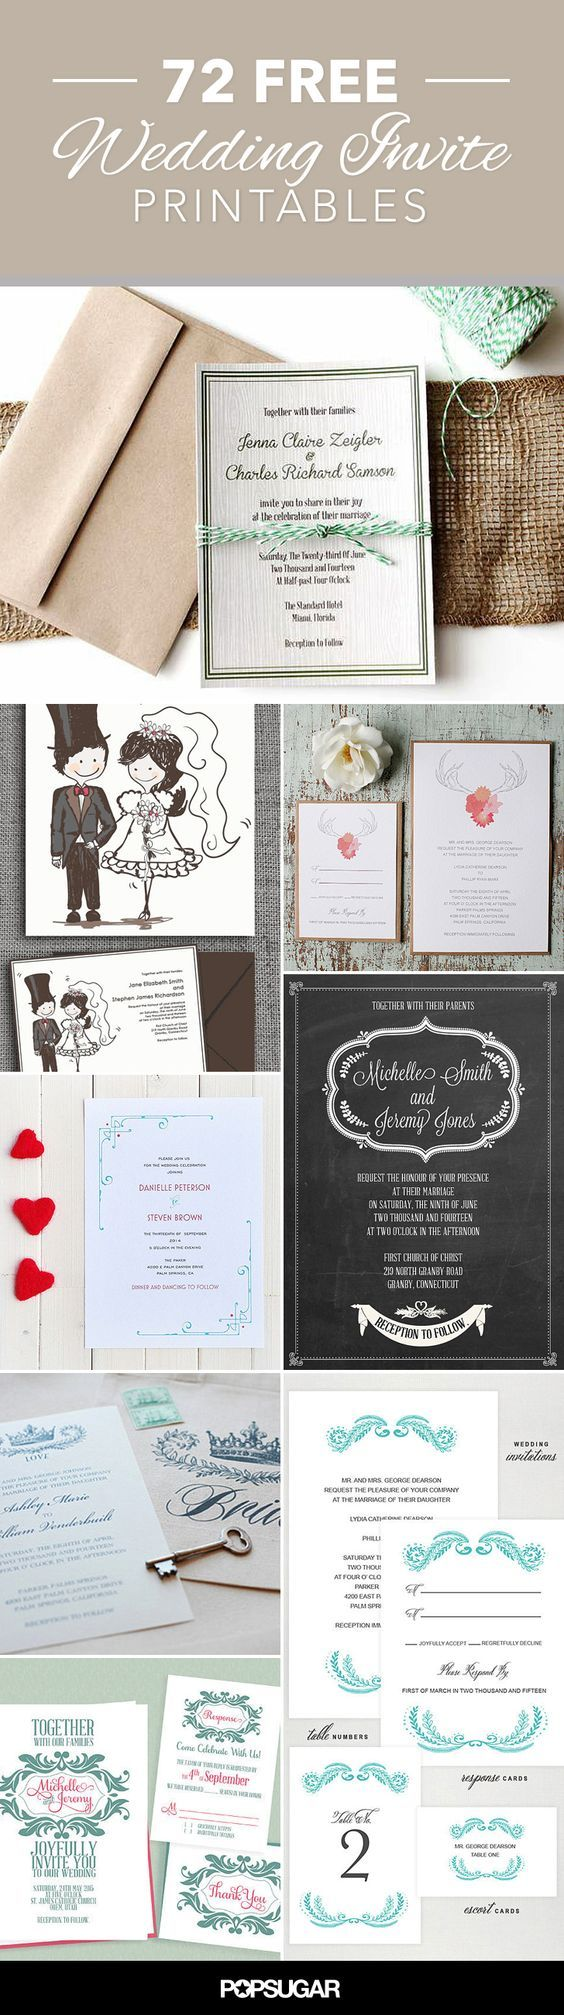 indian wedding cards wordings in hindi%0A    Beautiful WeddingInvite Printables to Download For Free